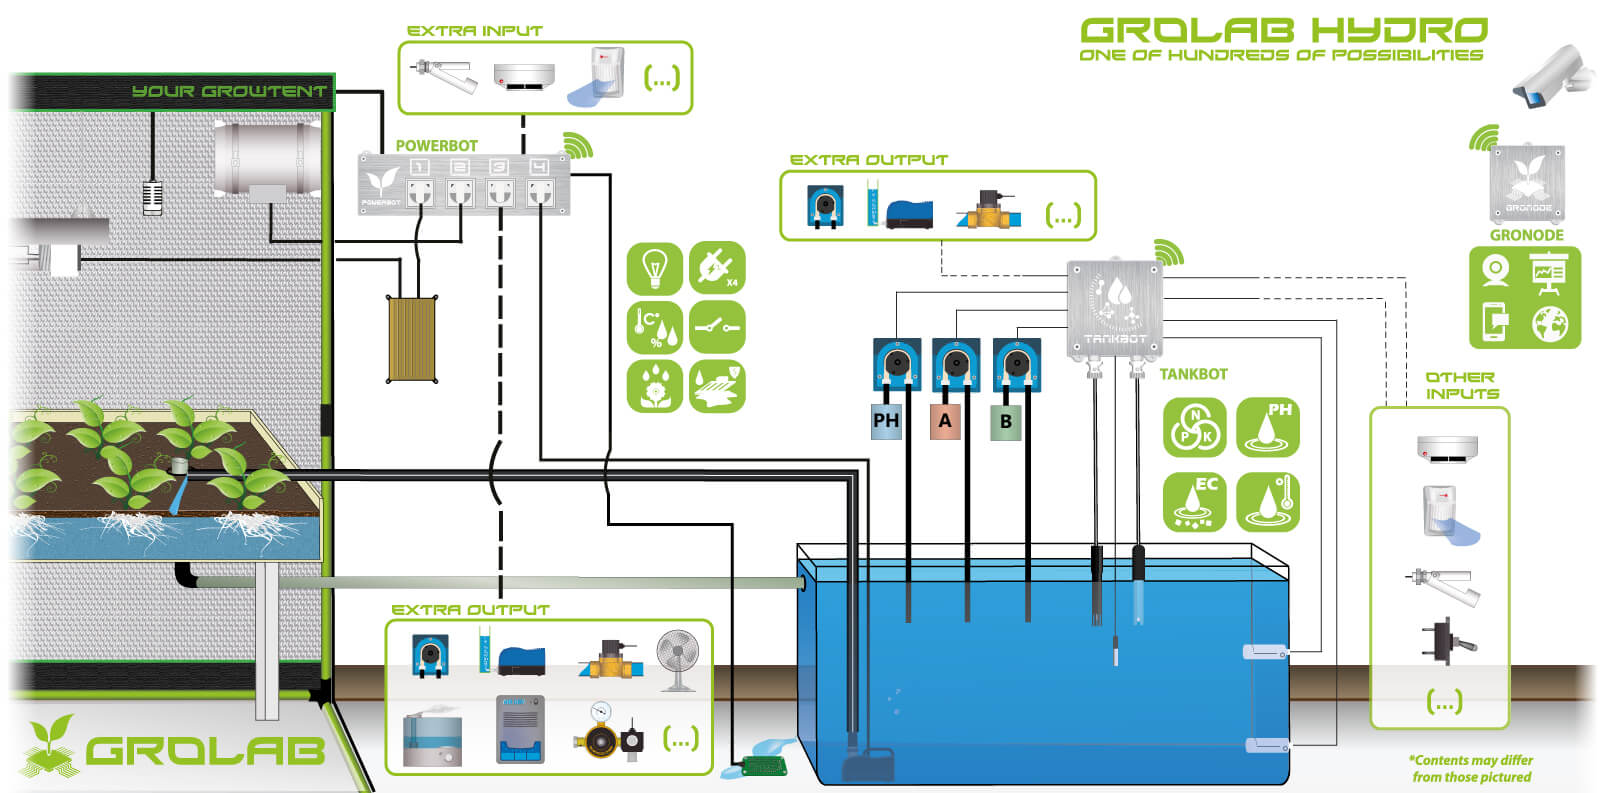 GroLab Hydro Kit composed by GroNode, PowerBot and a TankBot, example configuration schematic, controlling light, controlling irrigation, controlling climate, controlling nutrients, controlling PH while checking for smoke or motion.All in the same GroLab system.